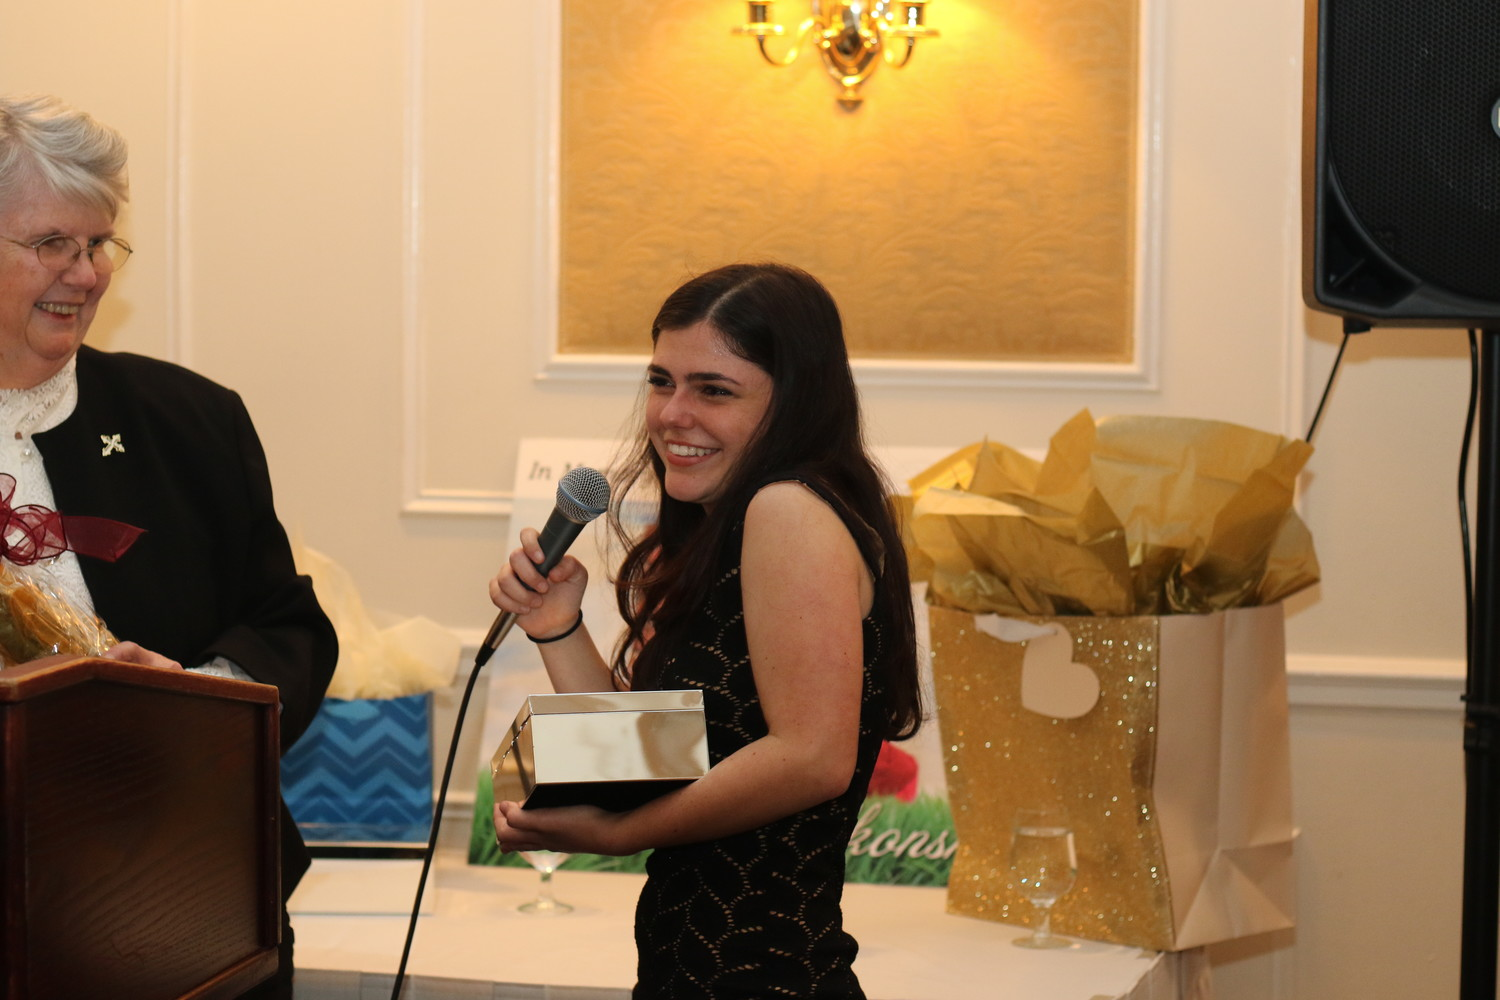 Recent Oceanside High School graduate Alexis Chiofalo was named a Woman of Compassion at Bethany House's fashion show fundraiser for her volunteer work. She is the youngest recipient of the award in the organization's history.